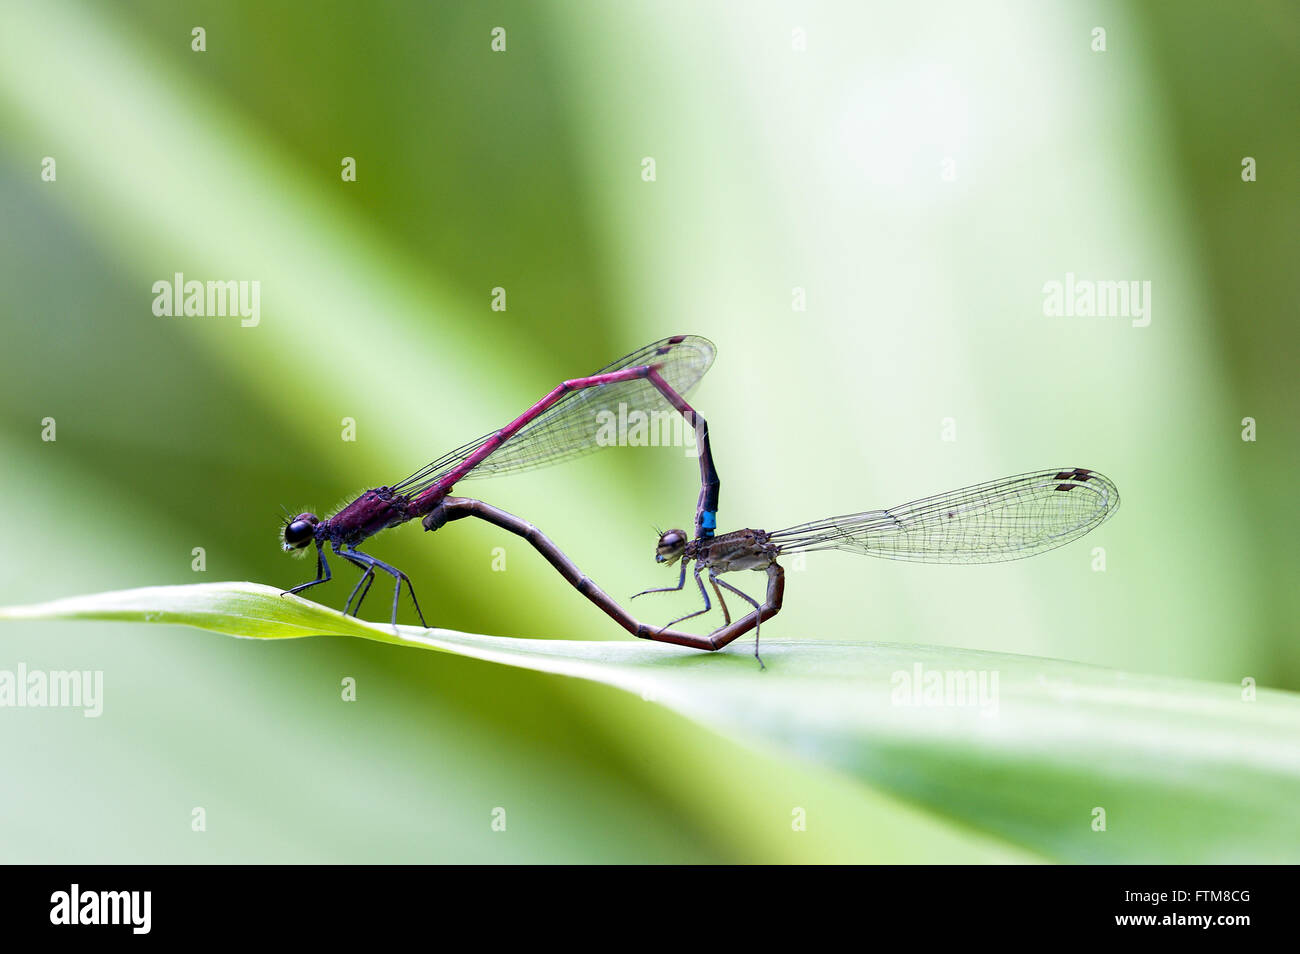 Mating dragonflies - Stock Image